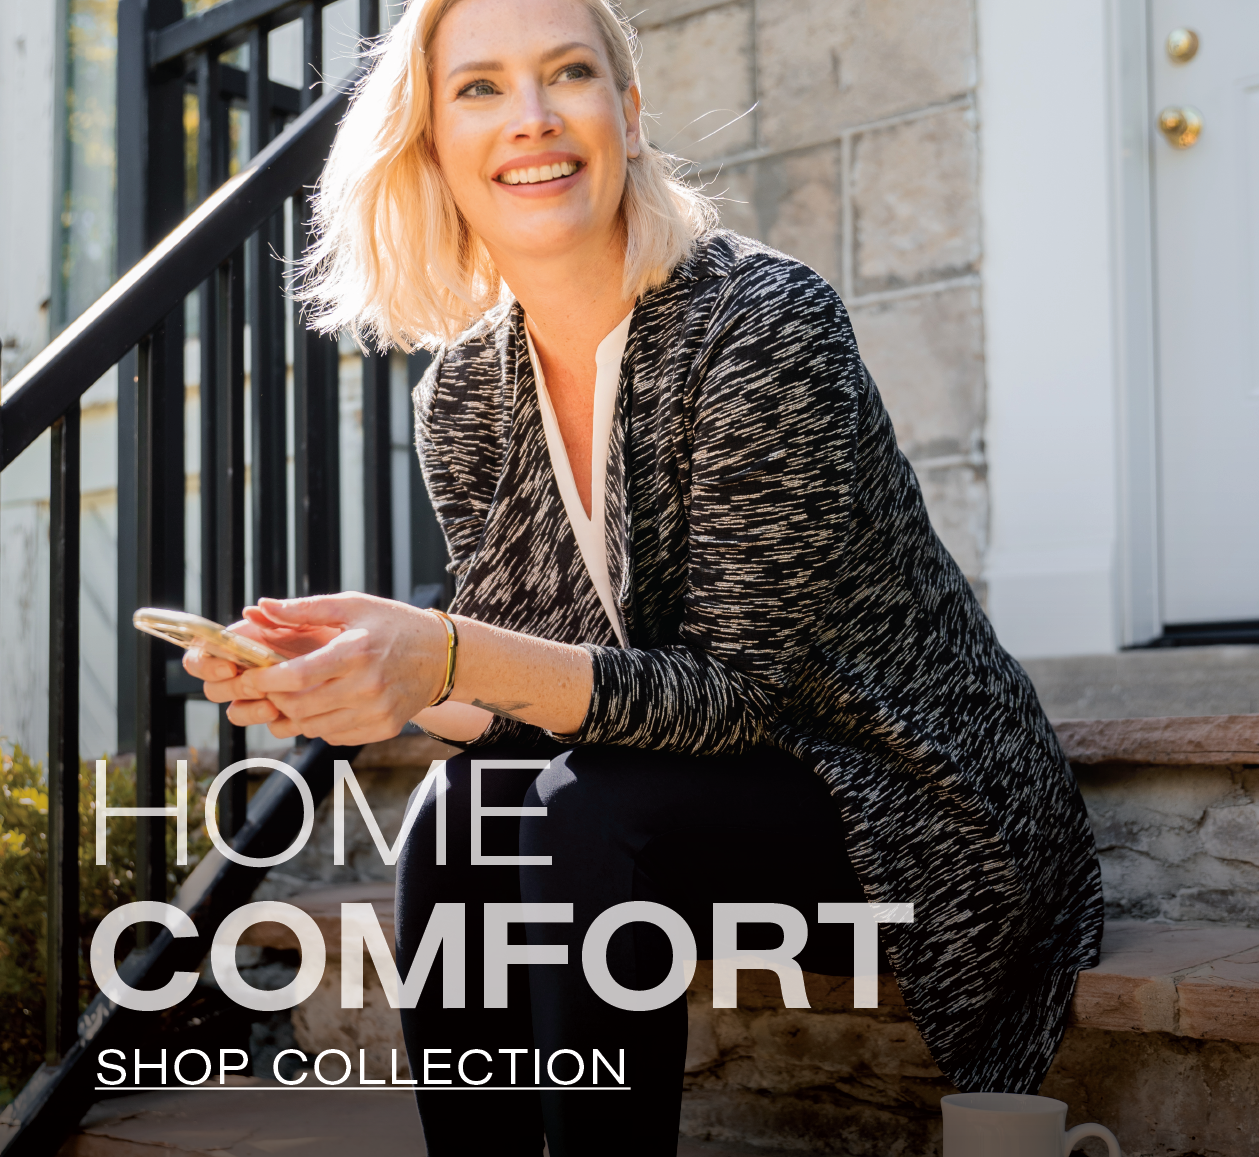 Home Comfort Shop Collection